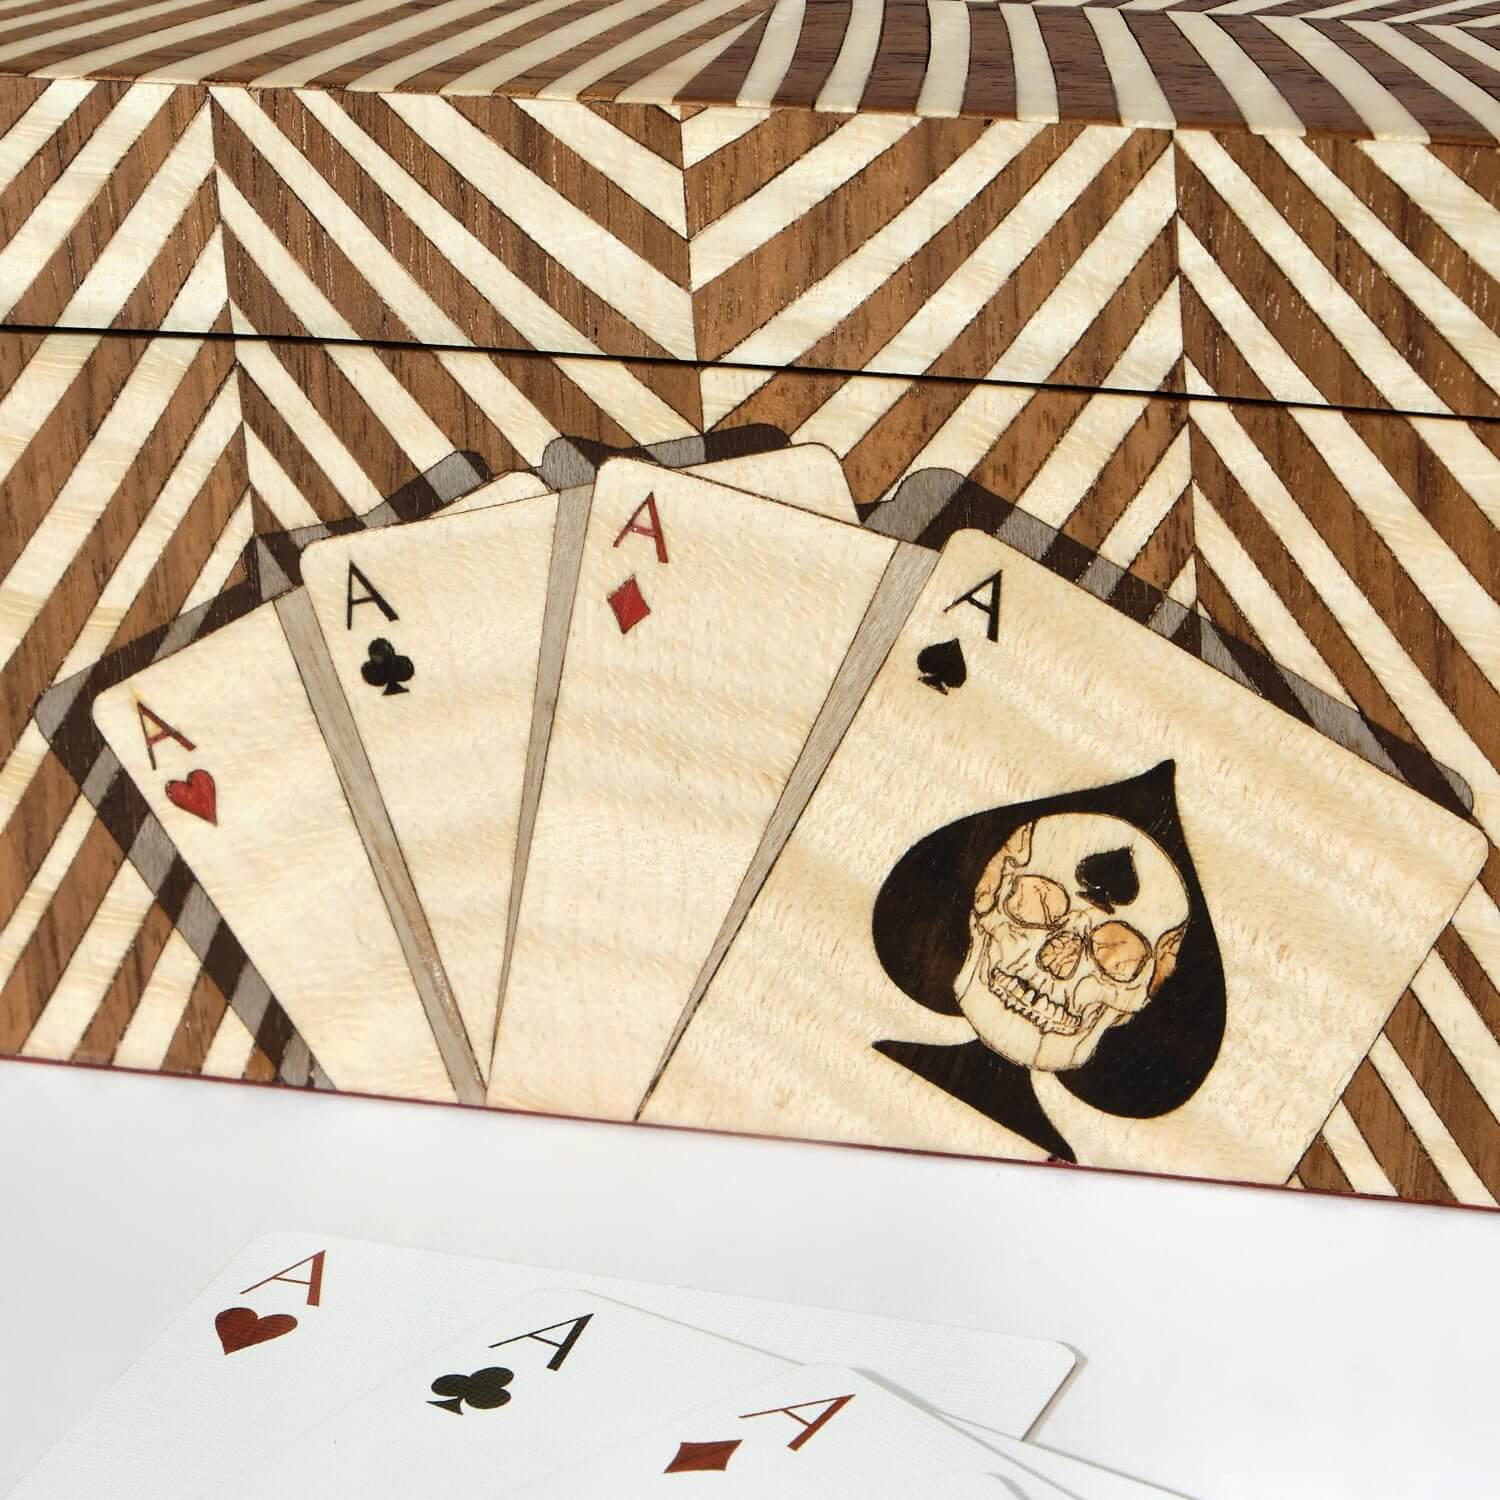 A trompe l'oeil technique created in wood marquetry creating the illusion of shadow behind marquetry playing cards on the Double Cards Box side